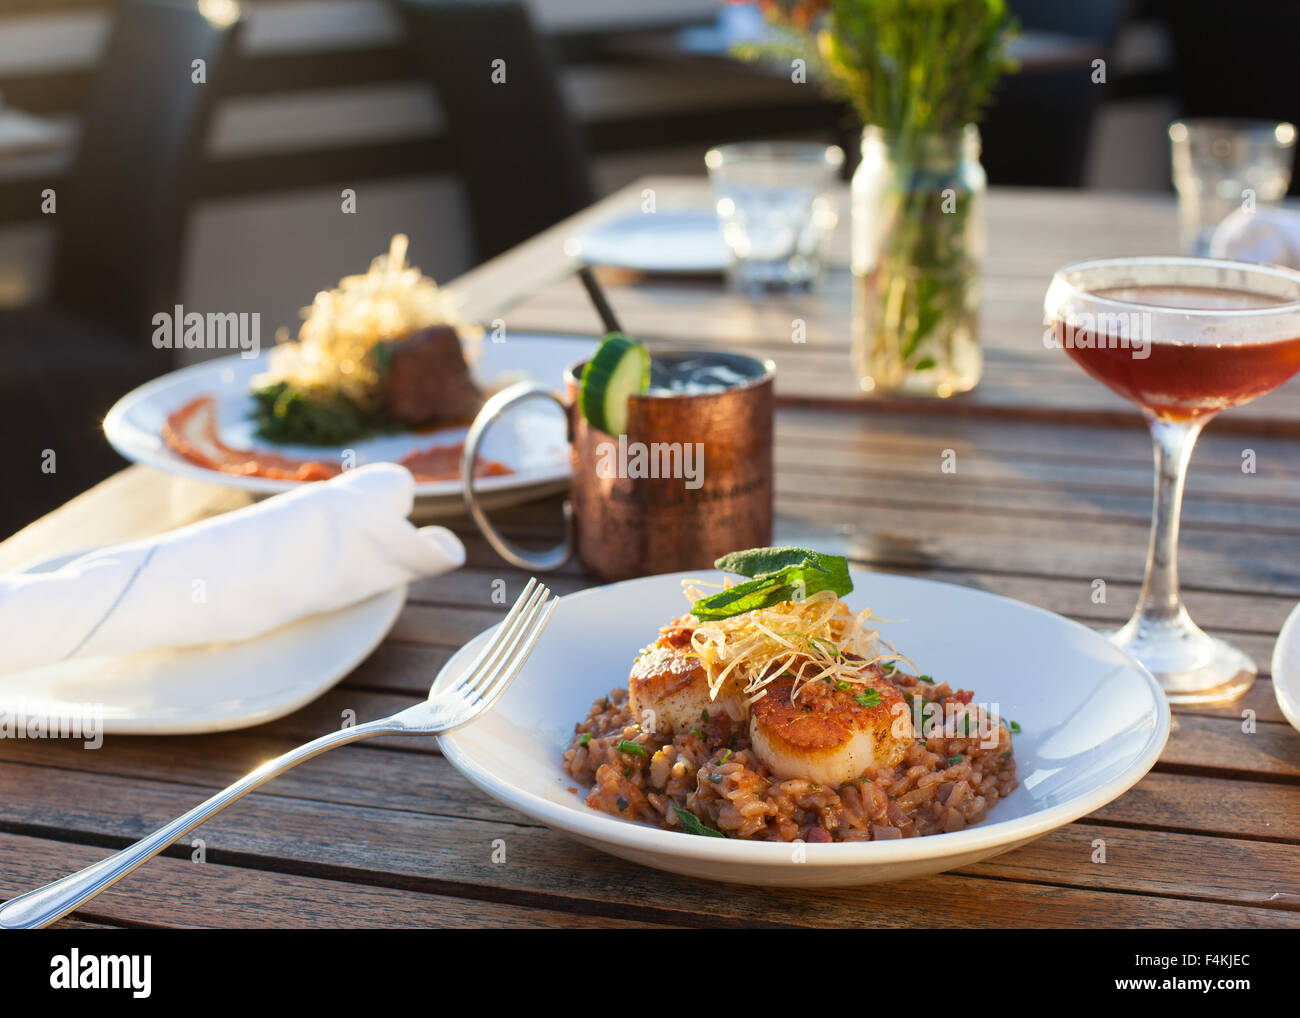 Al fresco dining with cocktails - Stock Image